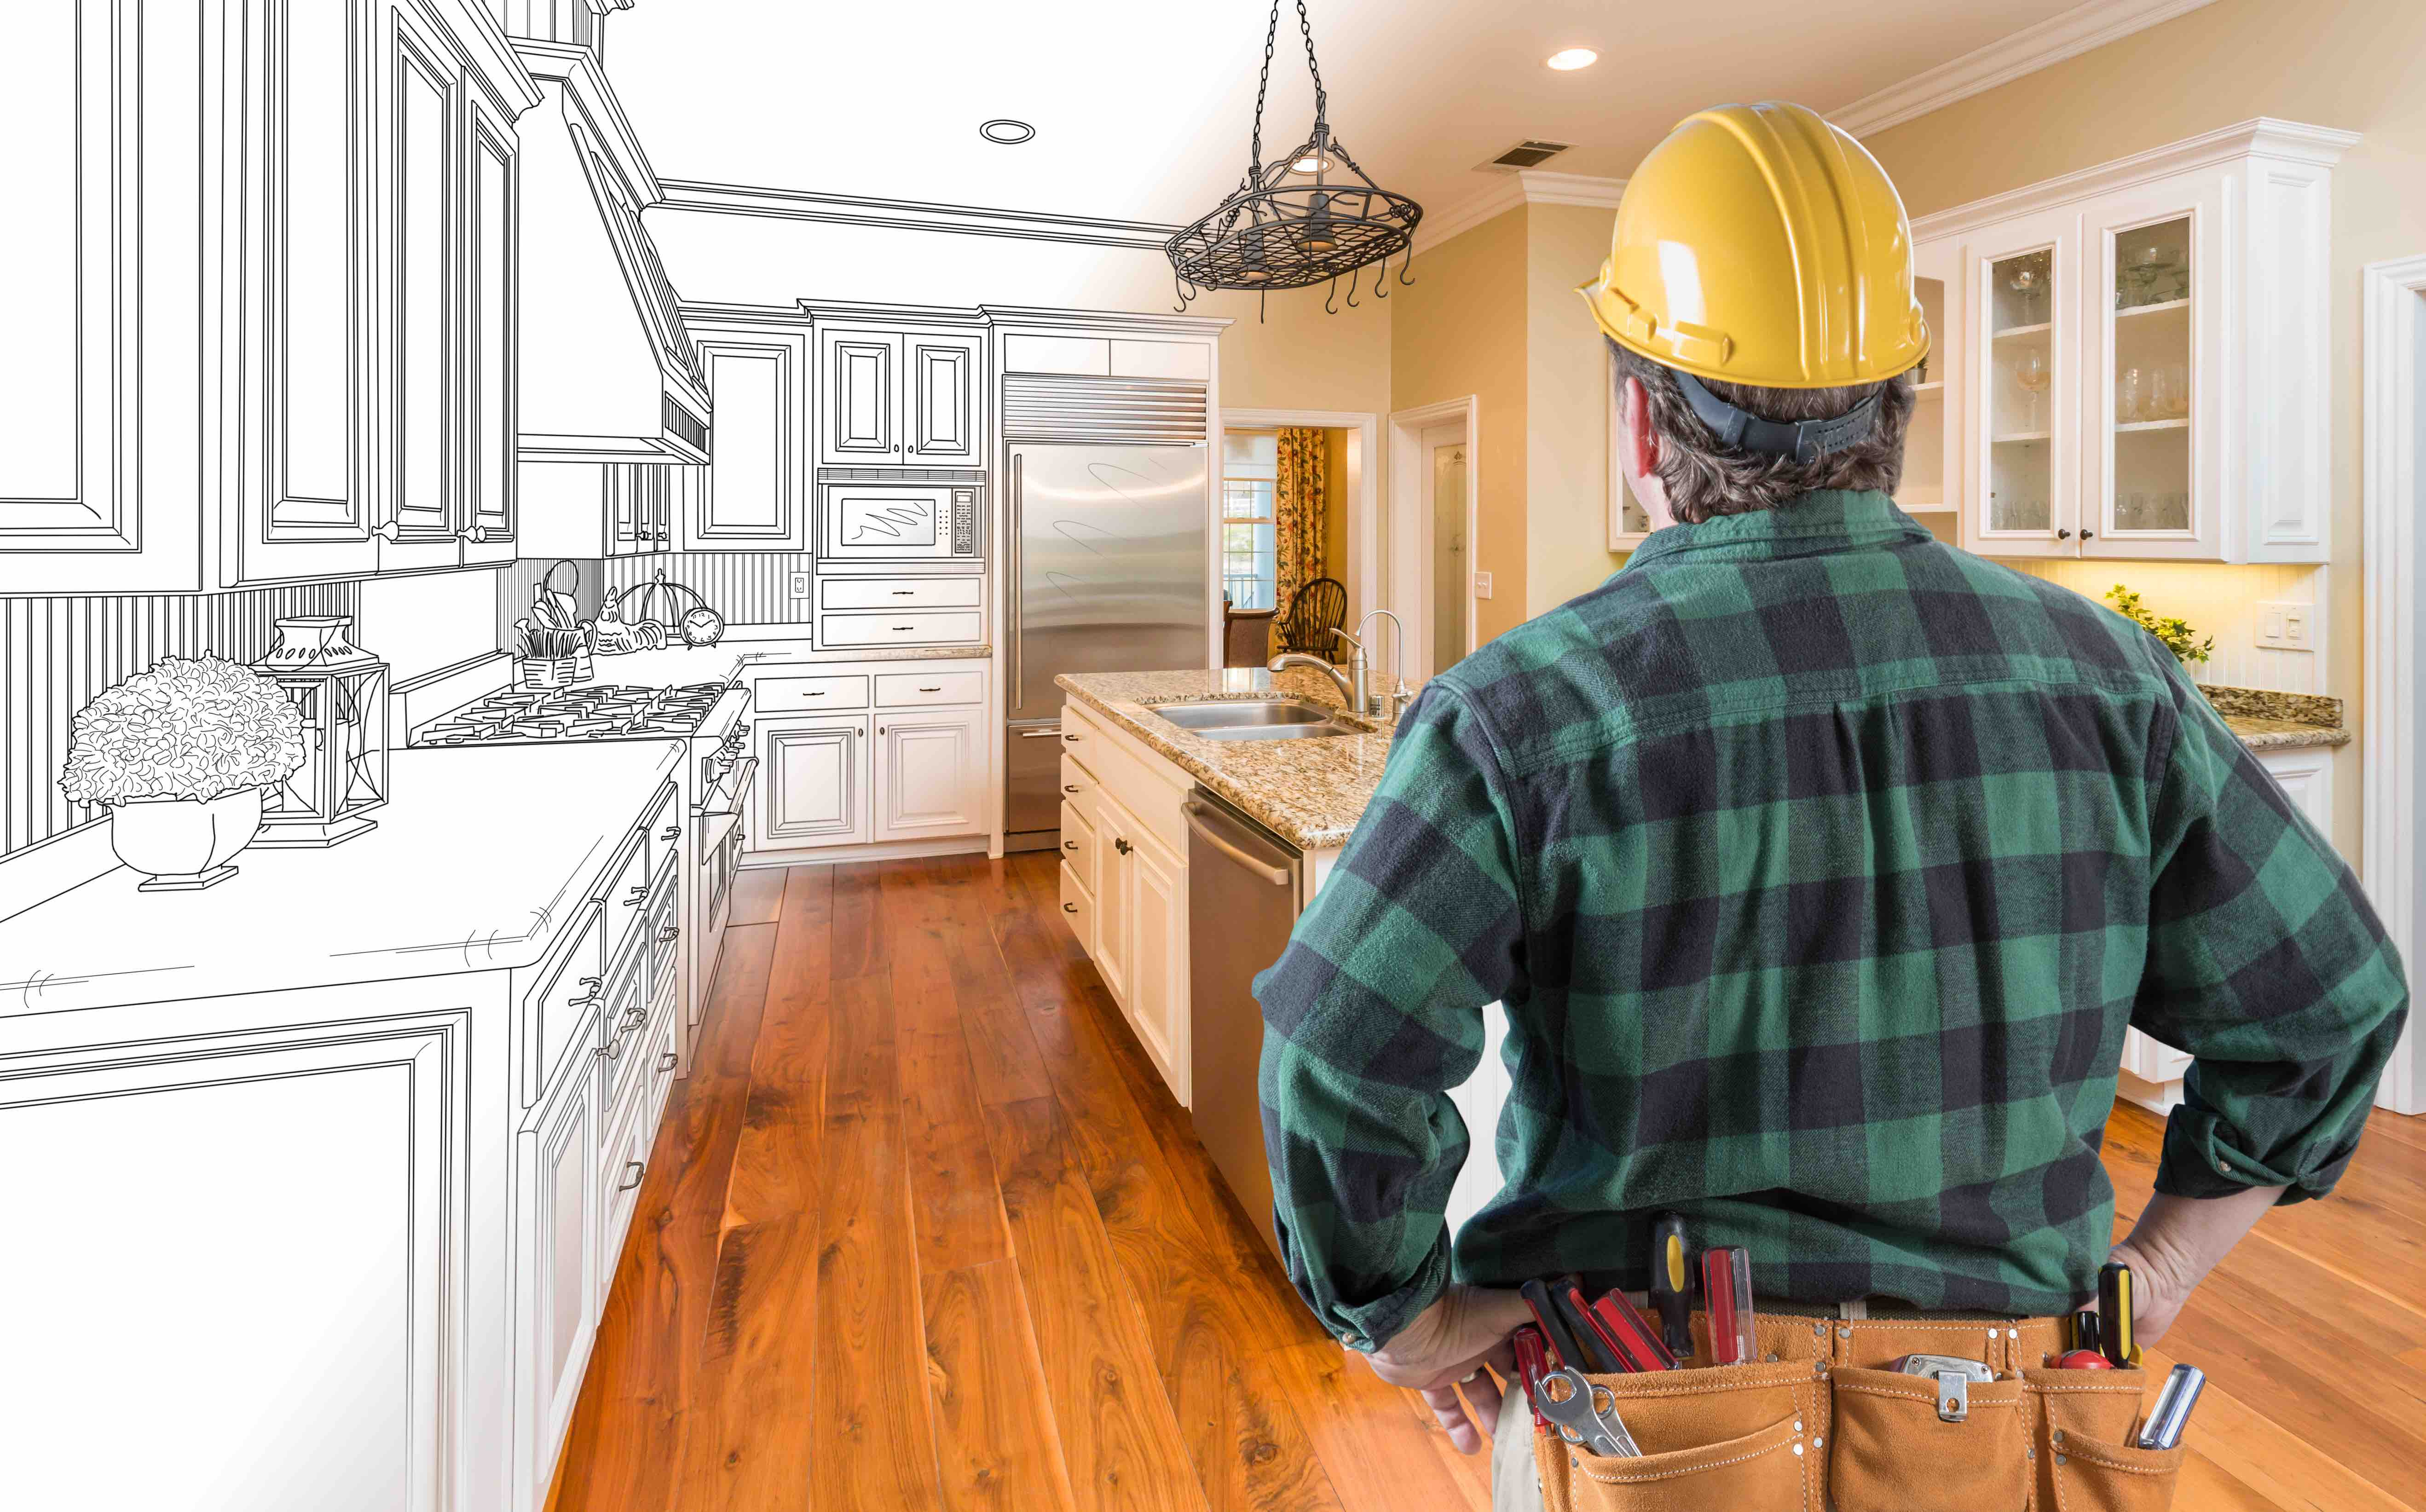 Should You Focus On Home Remodeling in 2019?